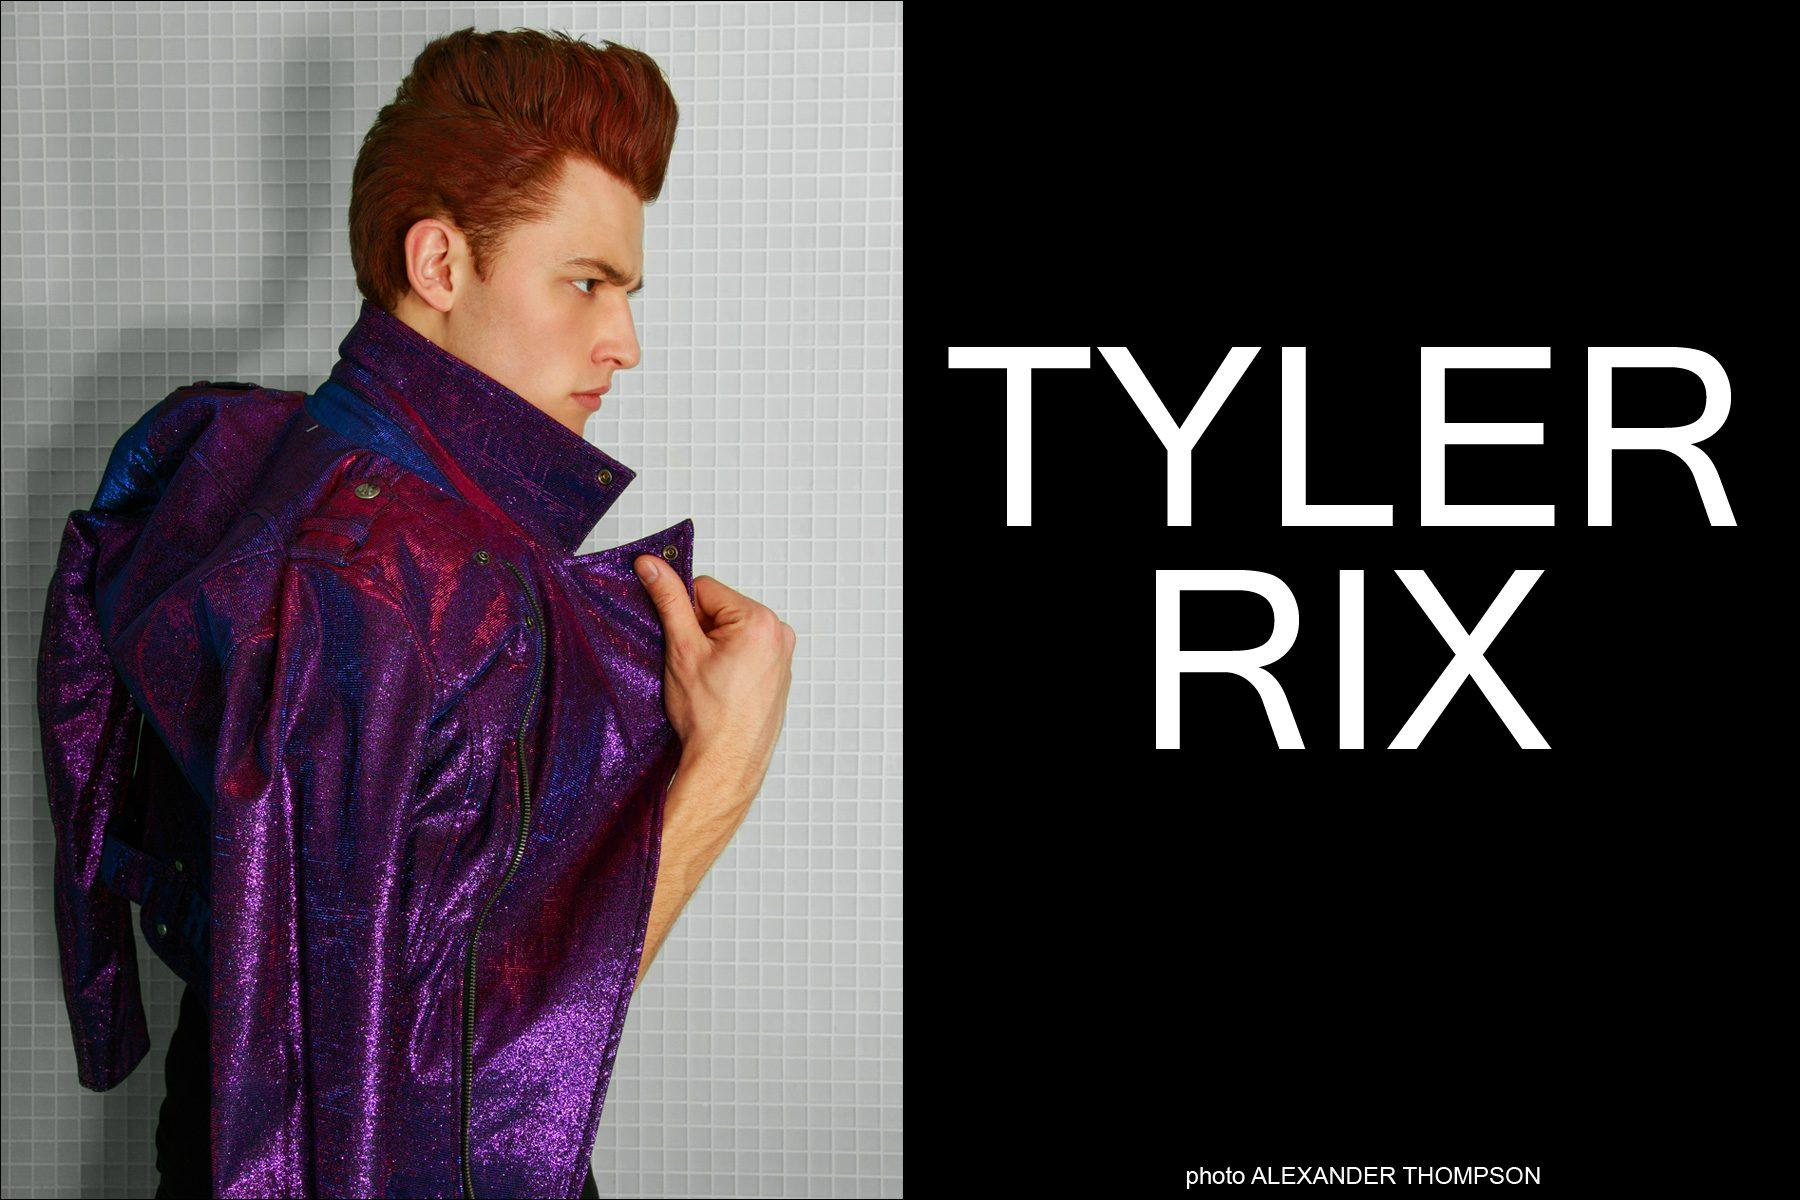 Tyler Rix wearing Tripp NYC, photographed for Ponyboy Magazine by Alexander Thompson, wearing Tripp NYC.